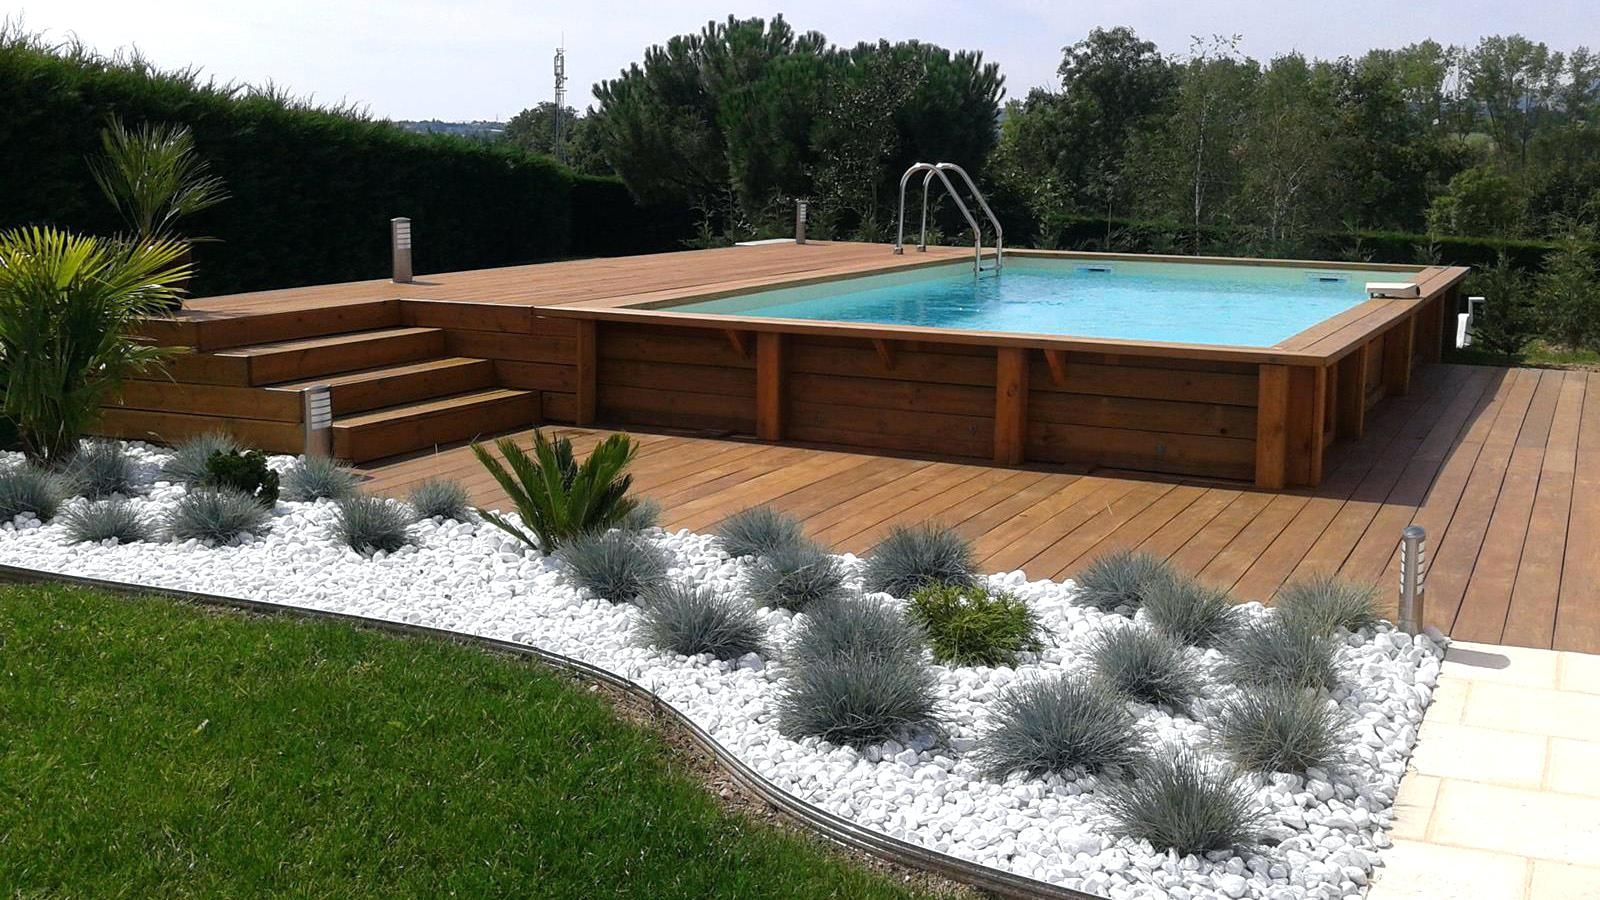 Amenagement Plage Piscine Terrasse Bois Piscine Hors sol Et Enterrace Exemple